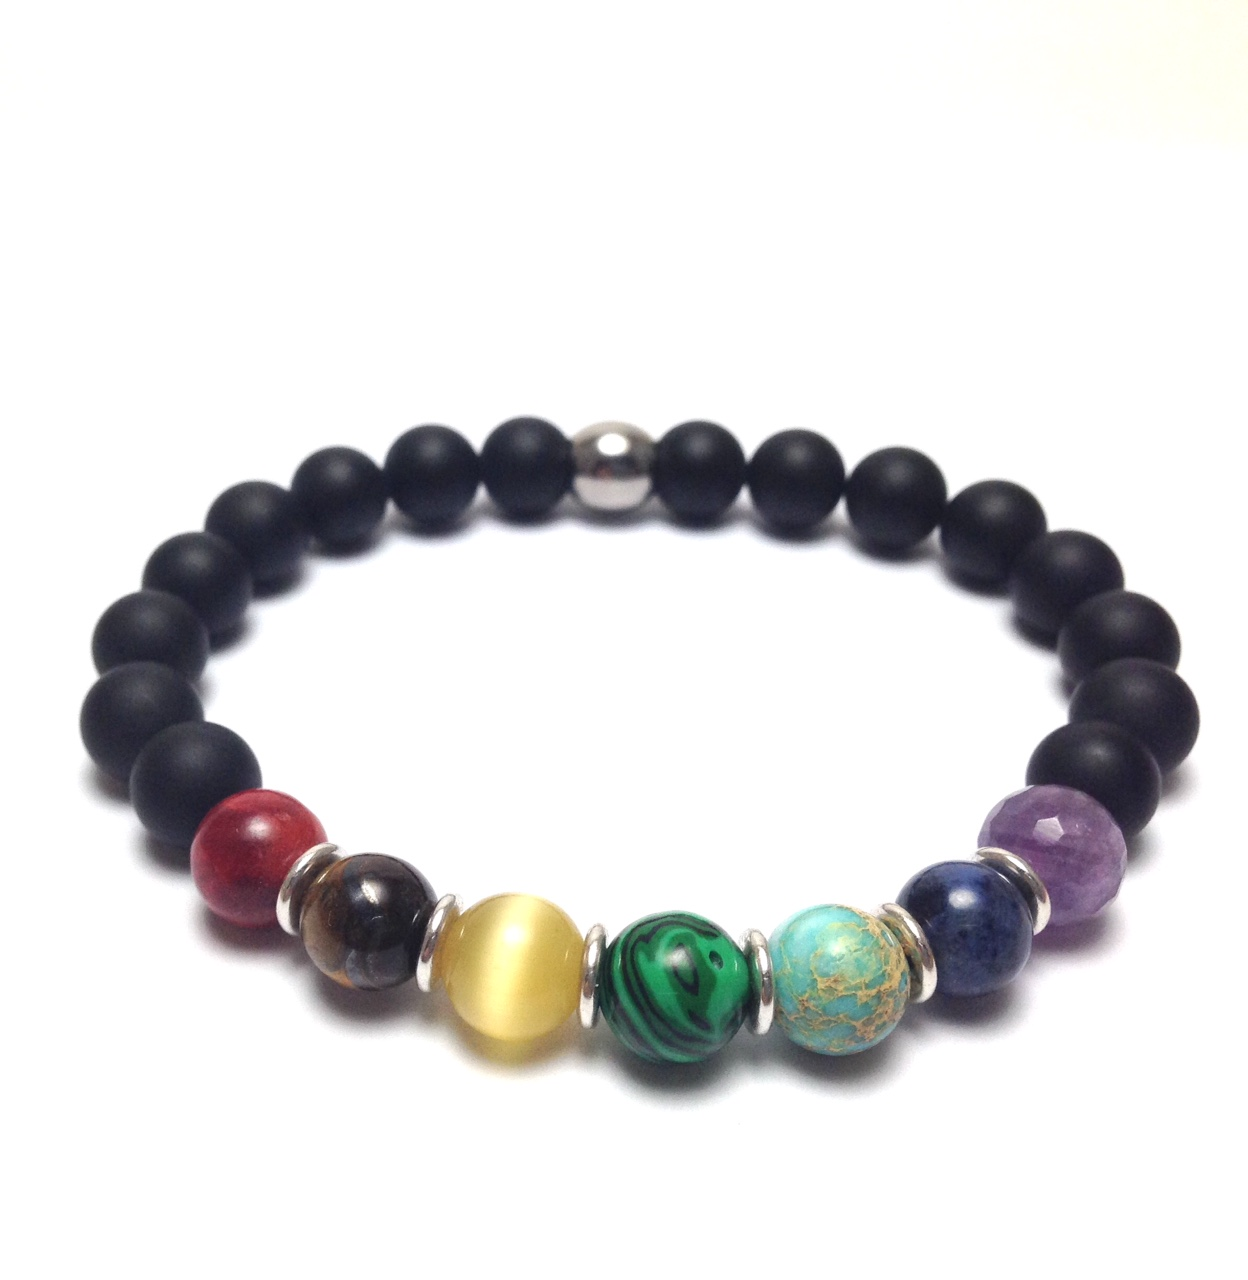 Chakra and onyx bracelet in stainless steel